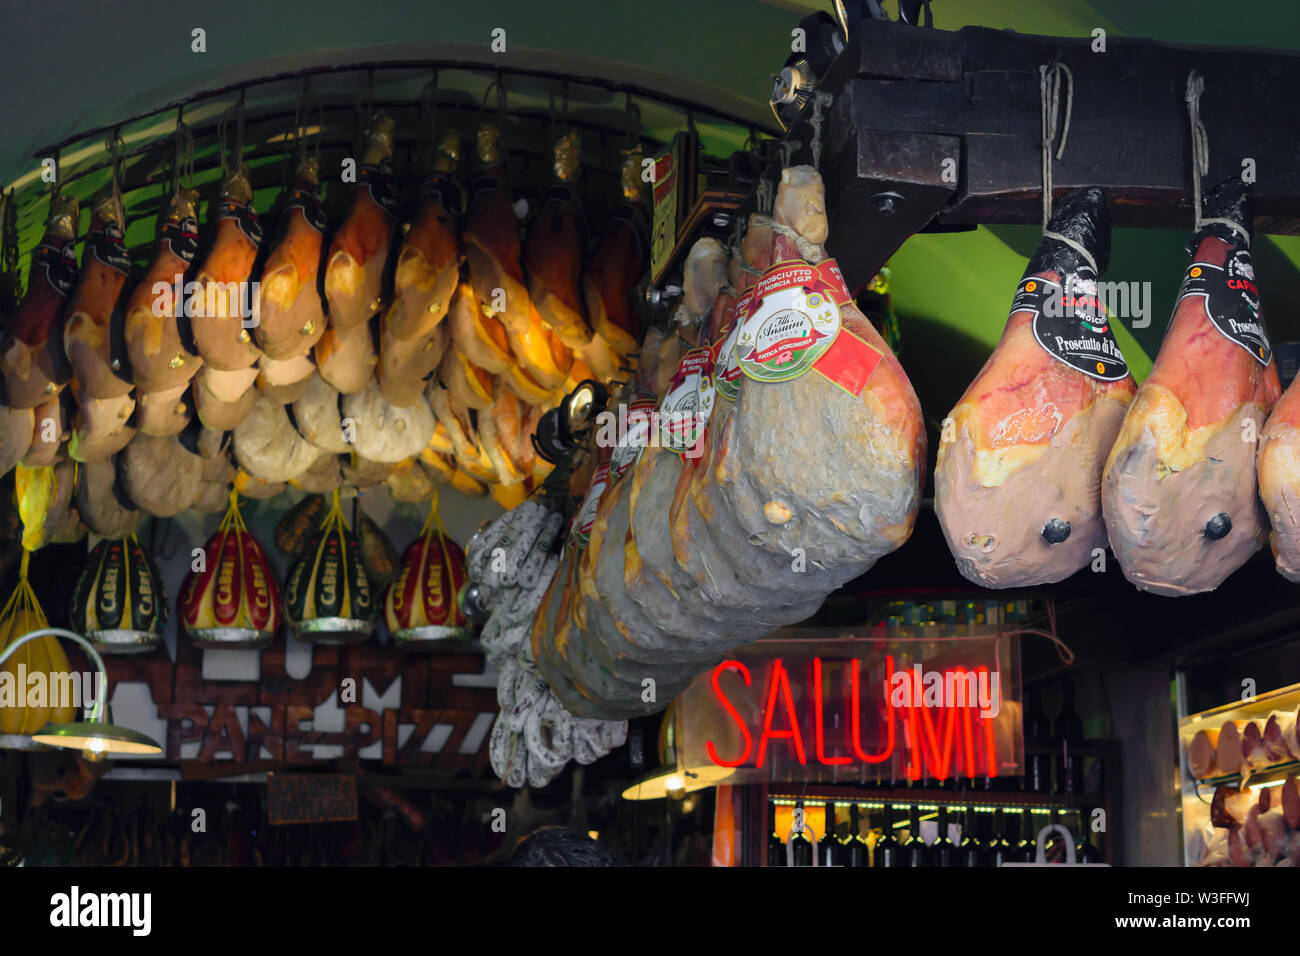 Rome, Italy 19 JUN 2019 Various types of huge smoked hams hanging in local meat shop where sells various type of salami sausages, smoked hams and wine - Stock Image